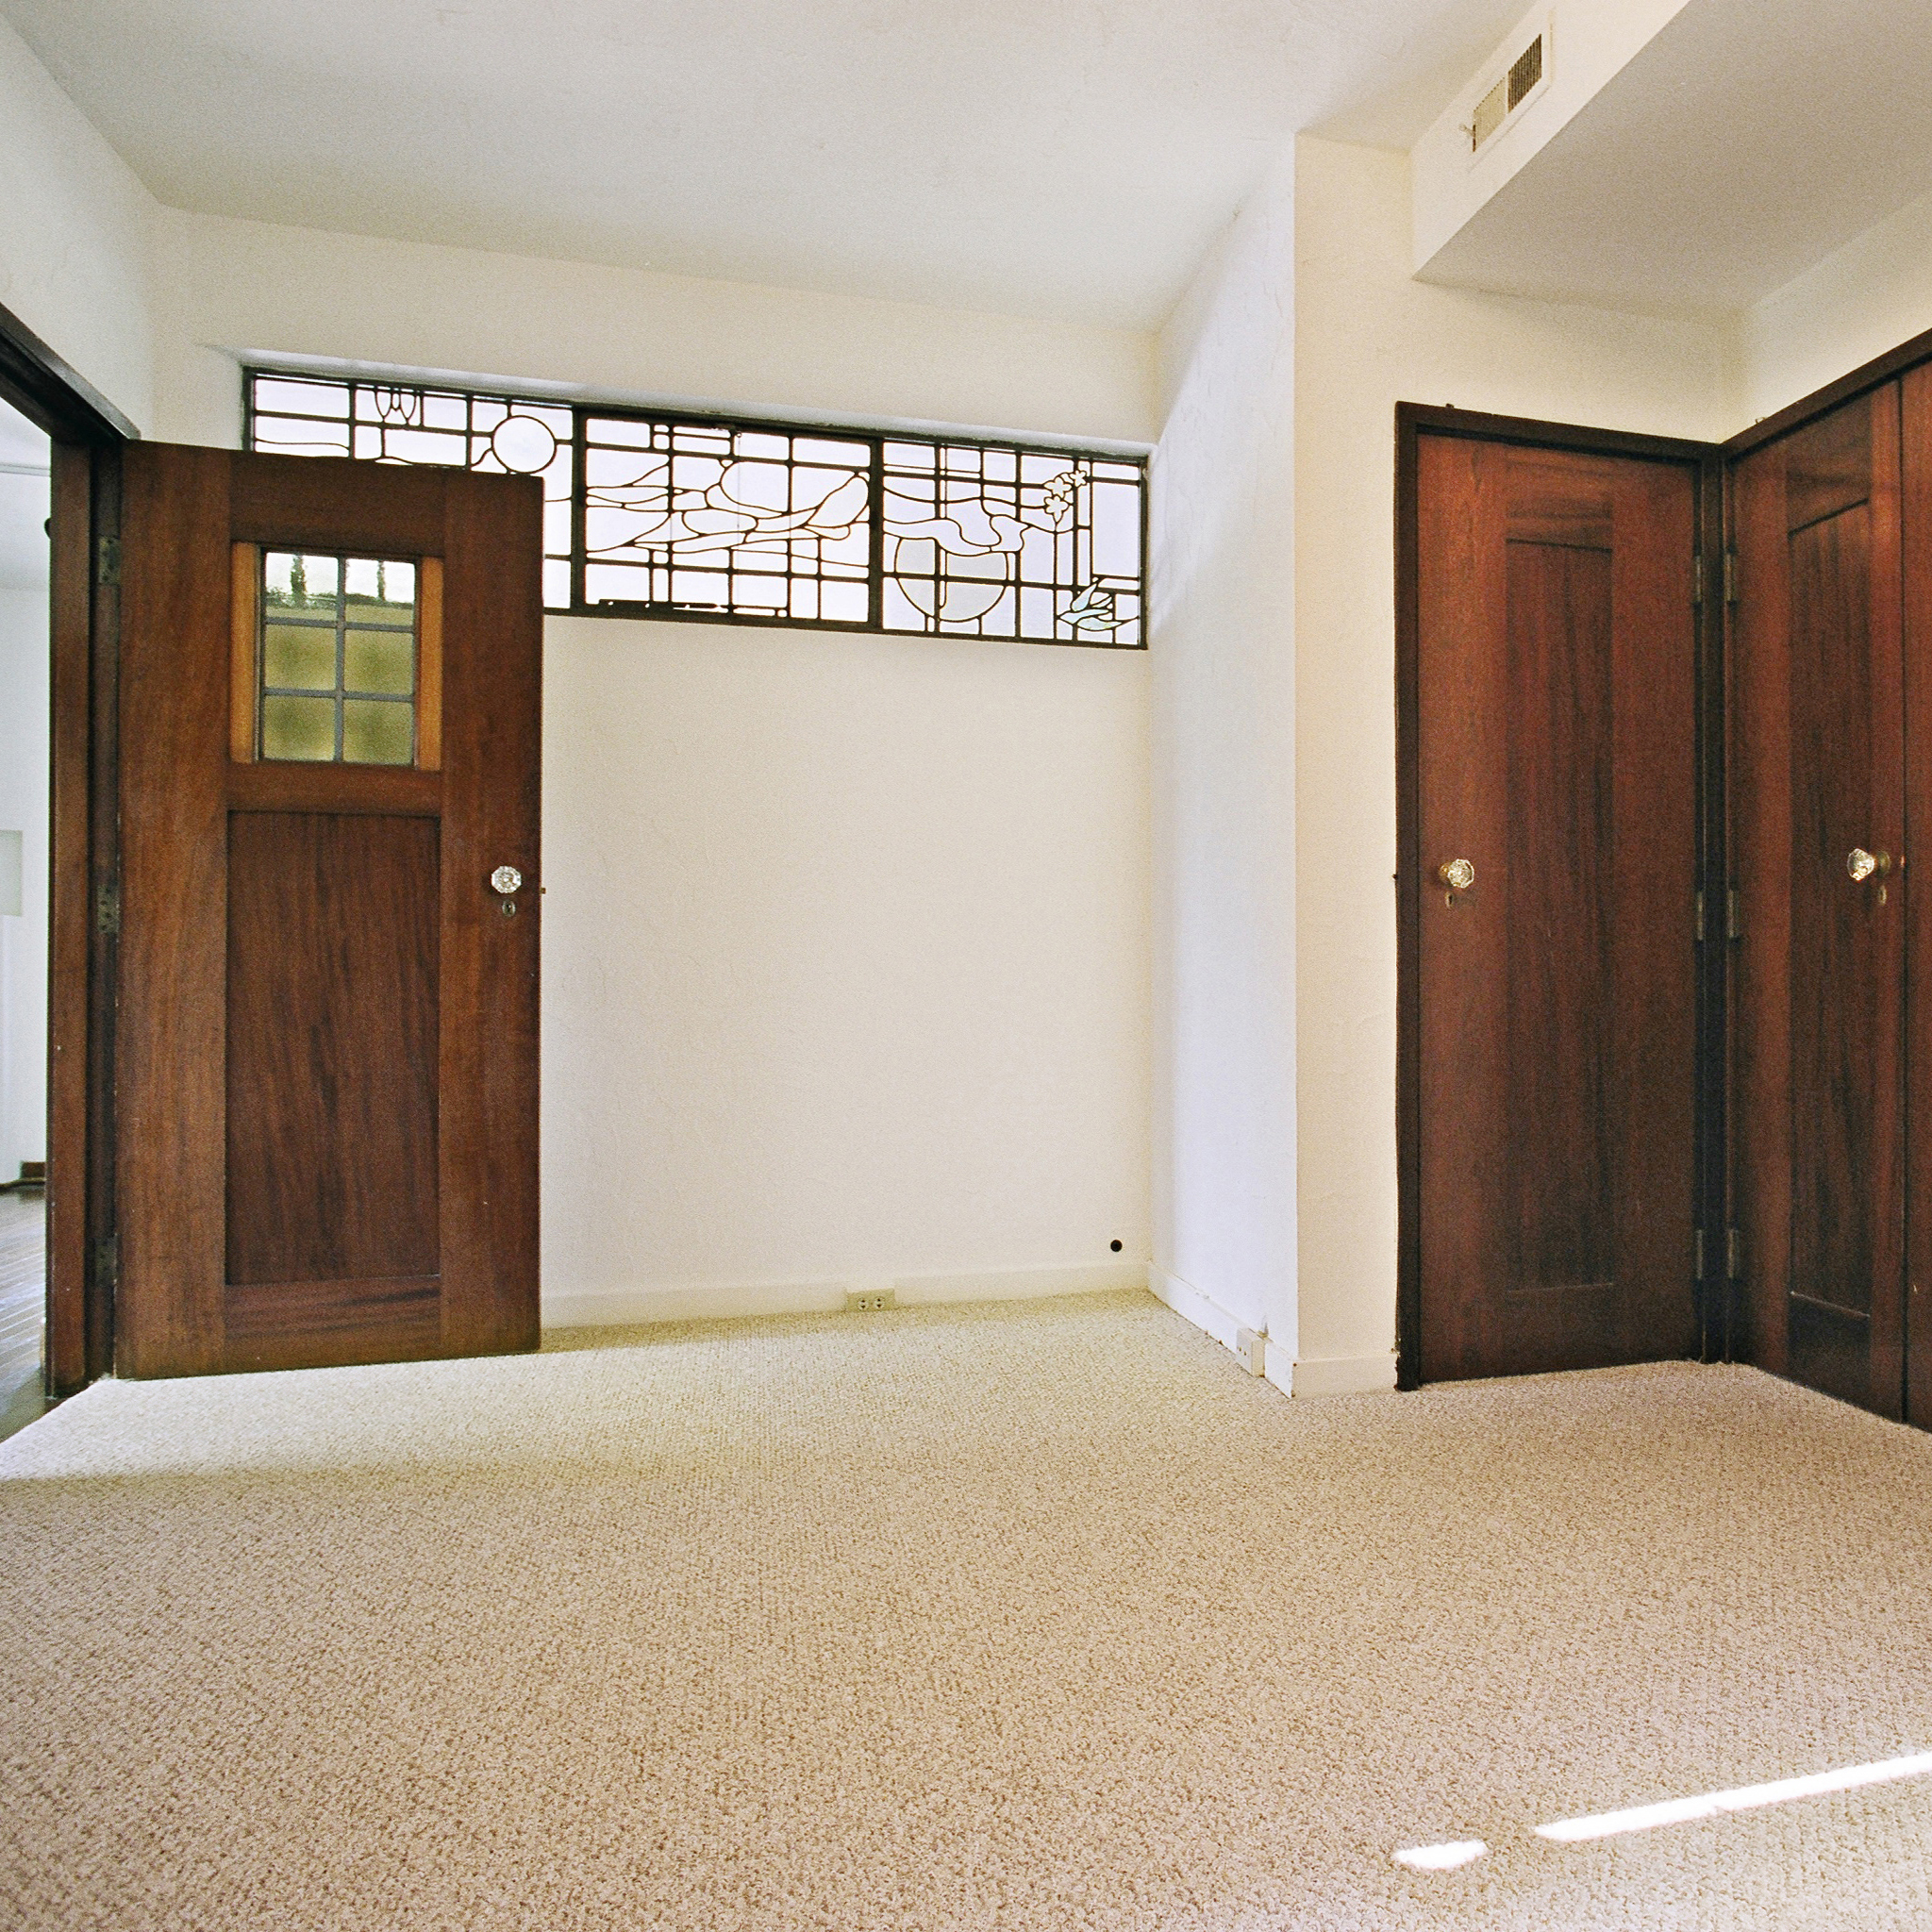 interior of 342 S. Highland Ave, Apt. 15A 7